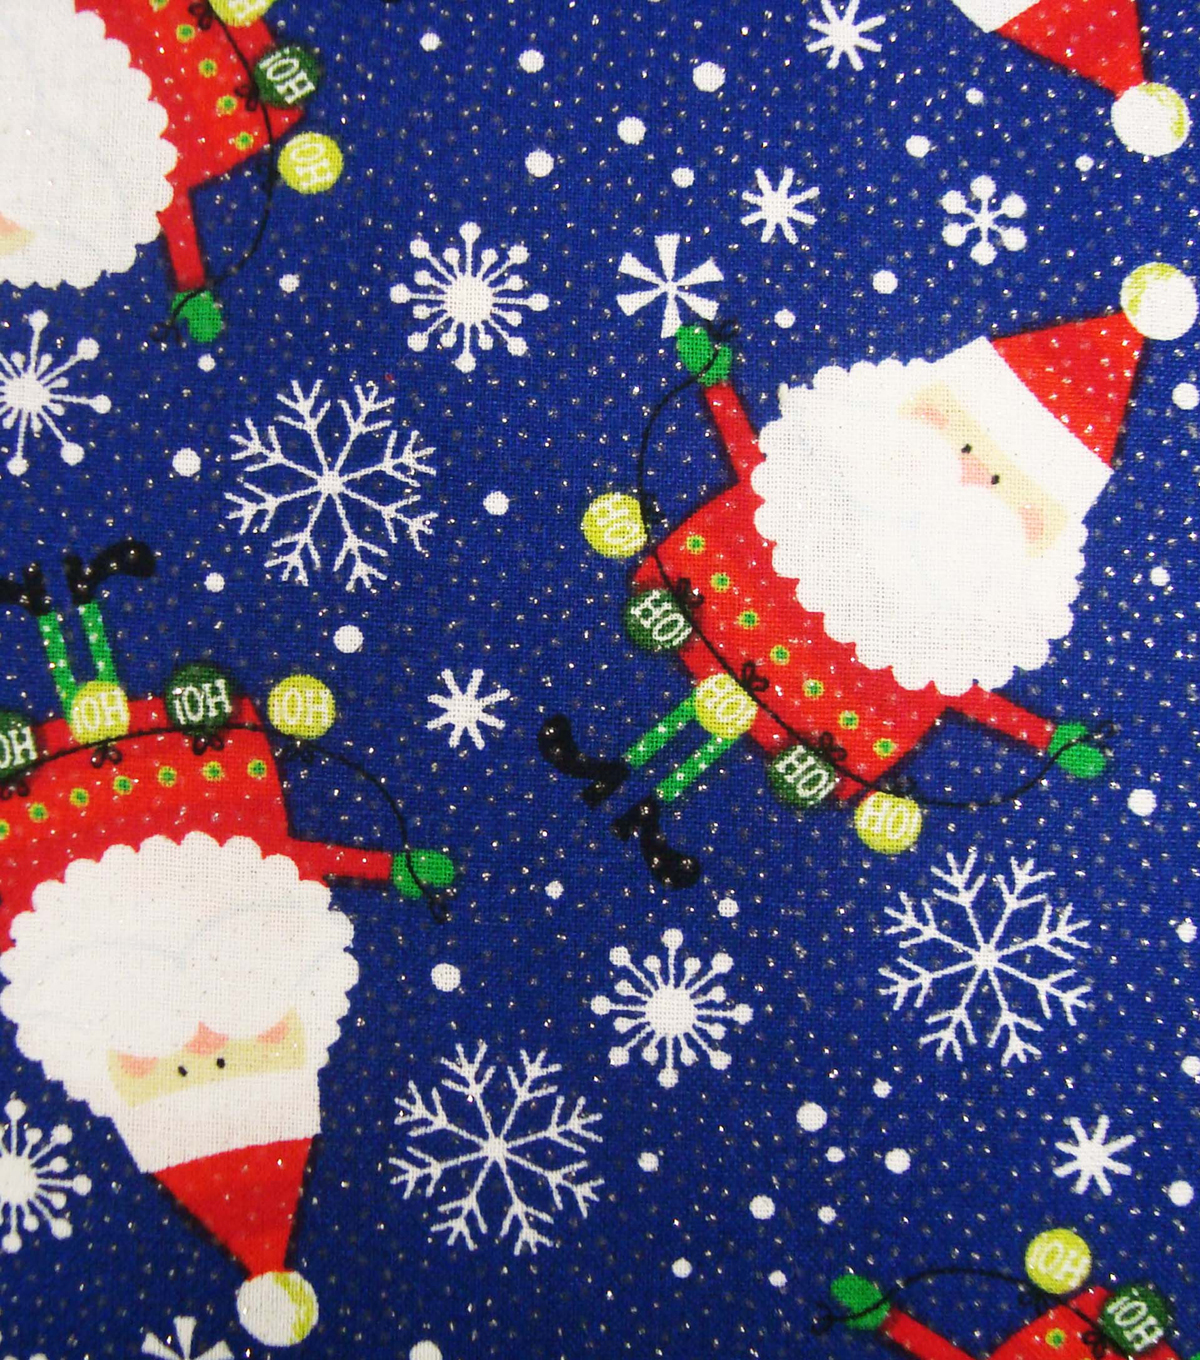 Keepsake Calico™ Holiday Cotton Fabric 43\u0022-Santa and Ornaments